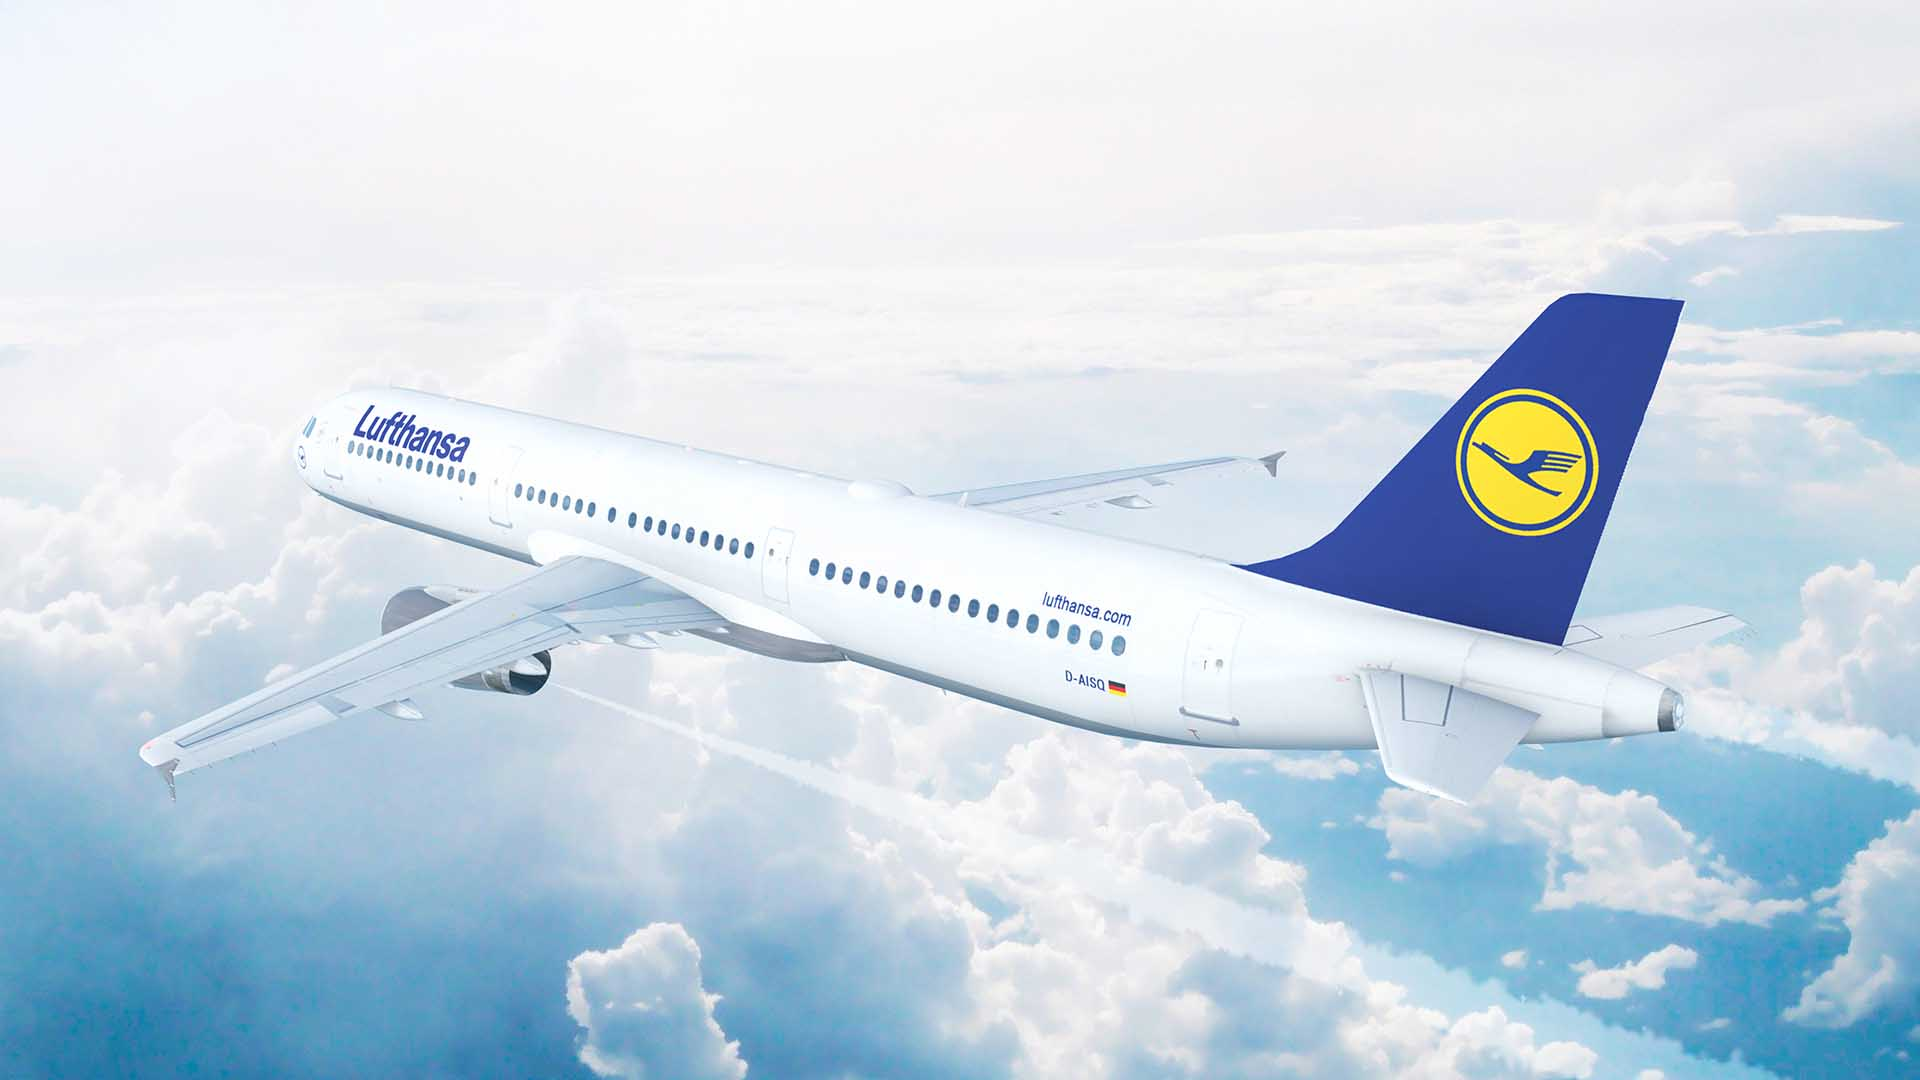 germany s lufthansa airline to award hackers at unibright hackathon